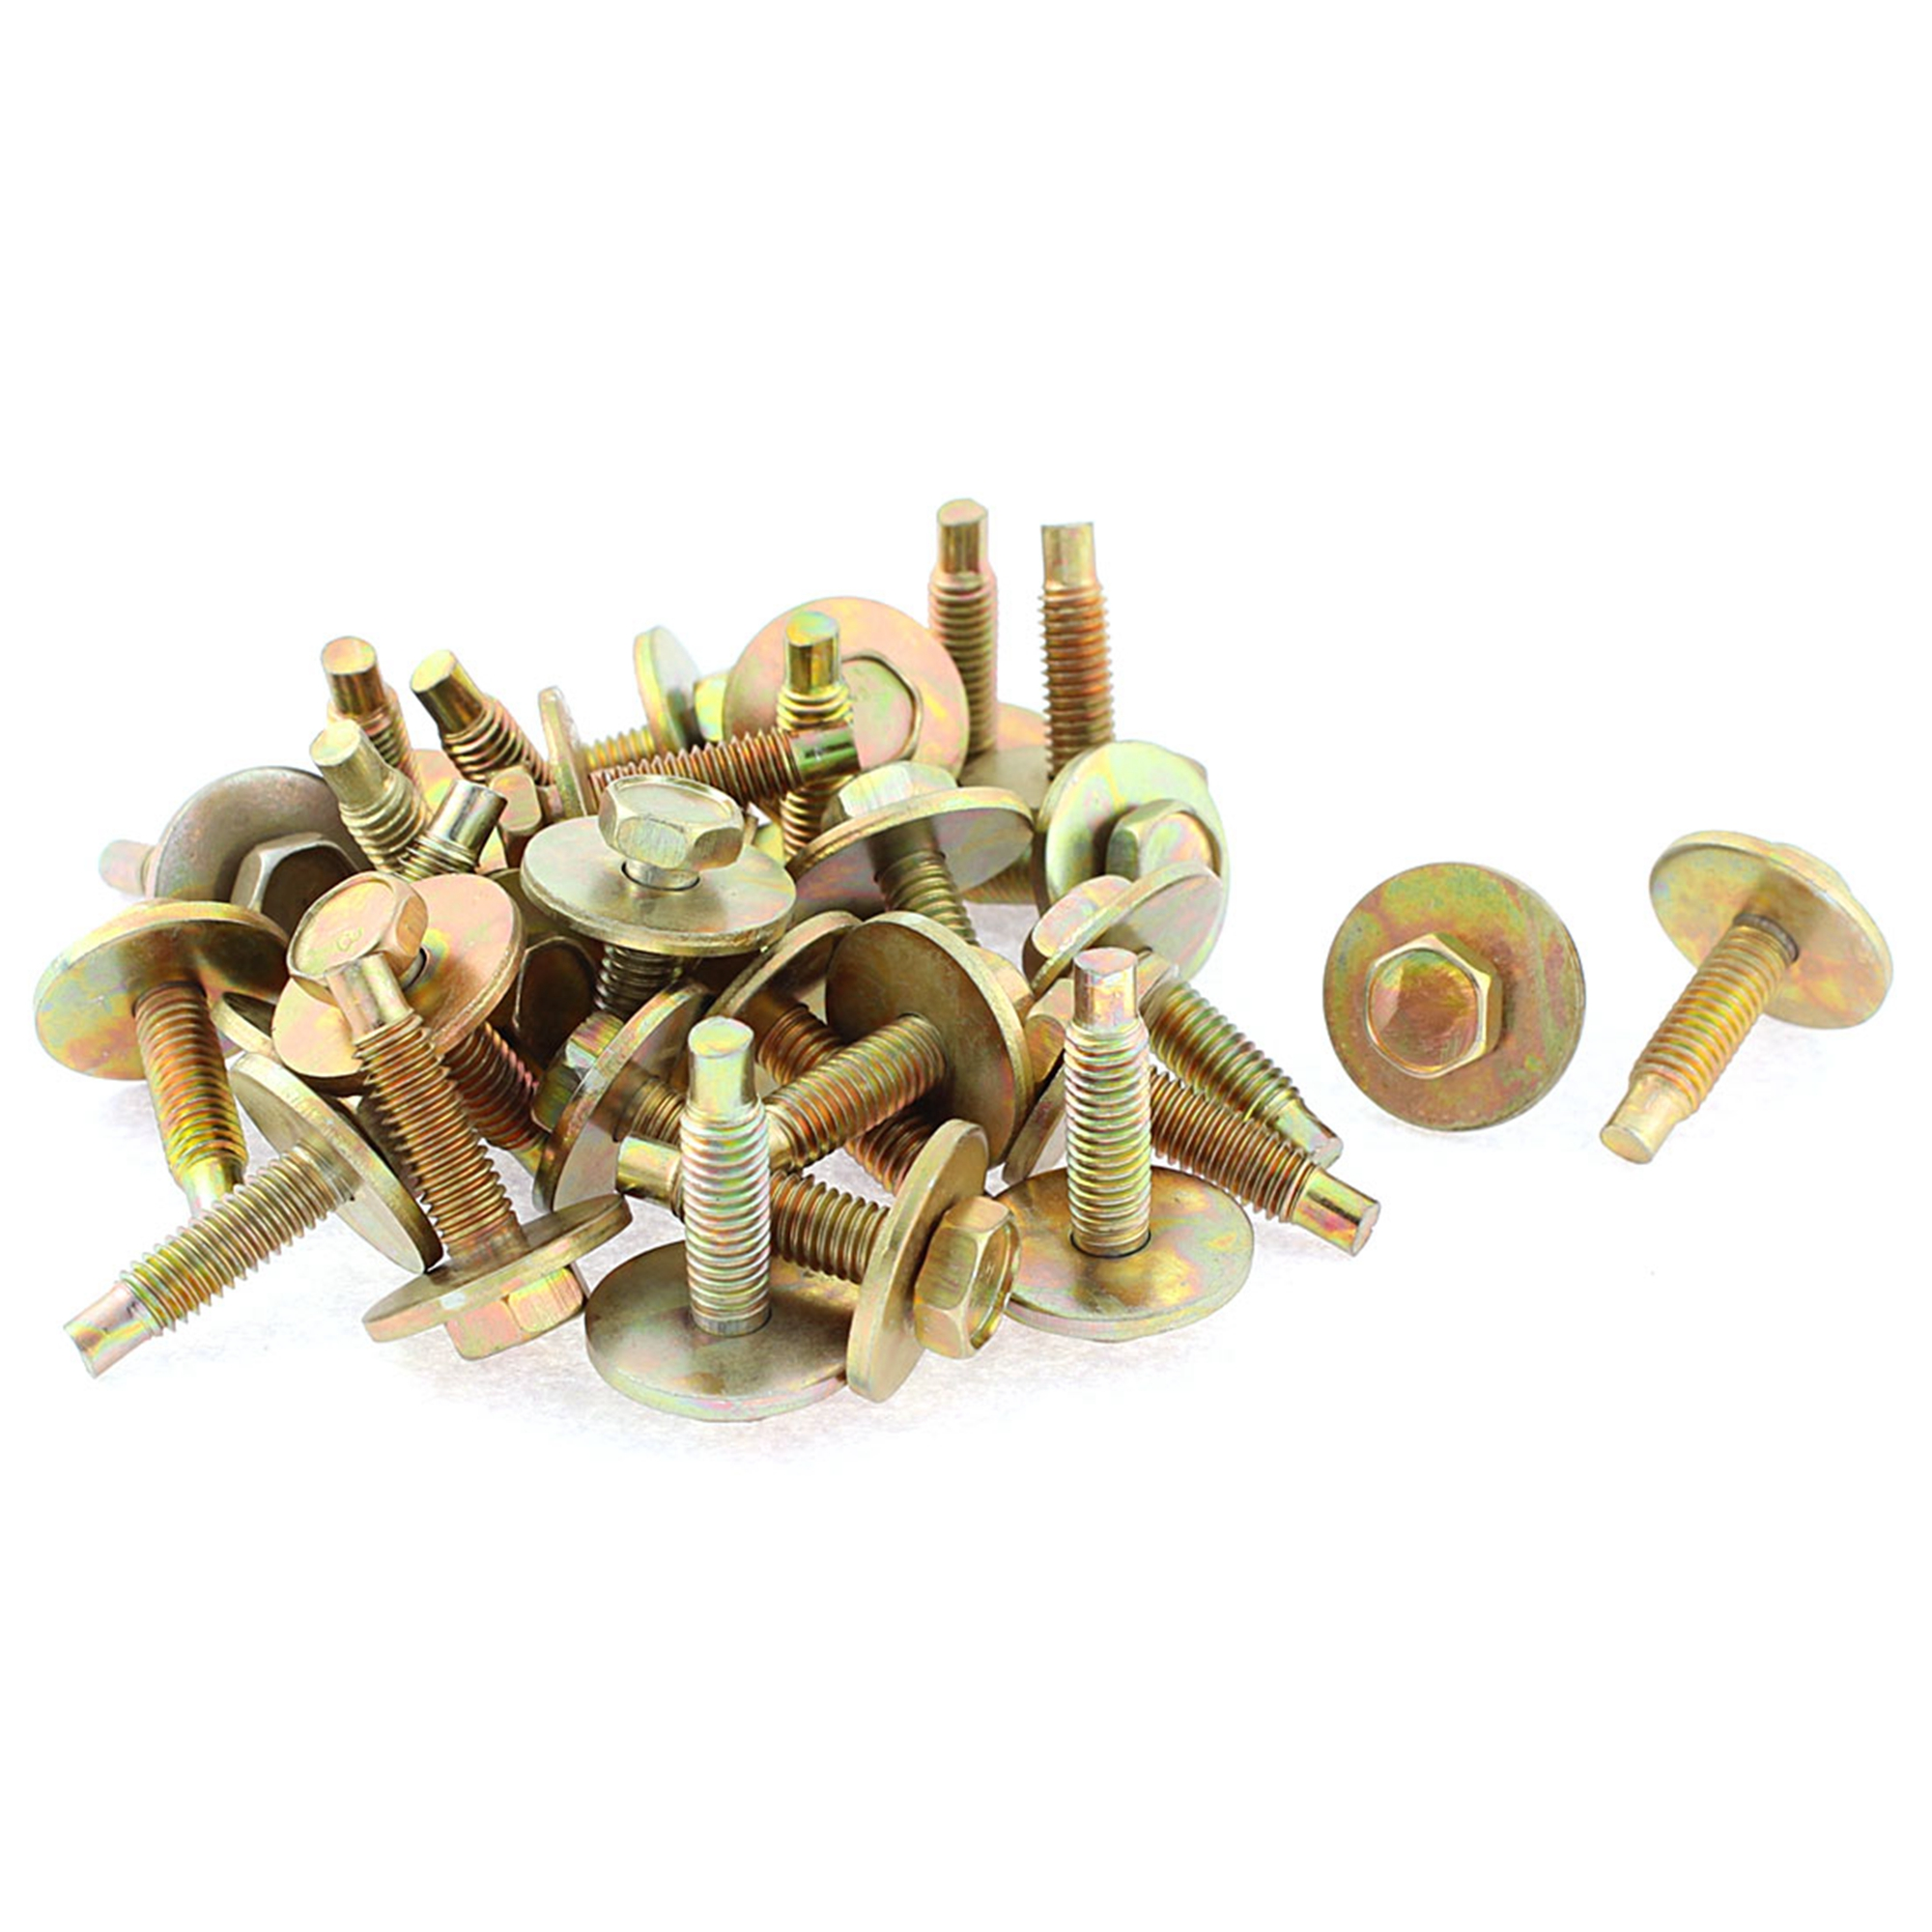 30Pcs Bronze Tone Auto Metal Screw Body Fender Retainer Clips